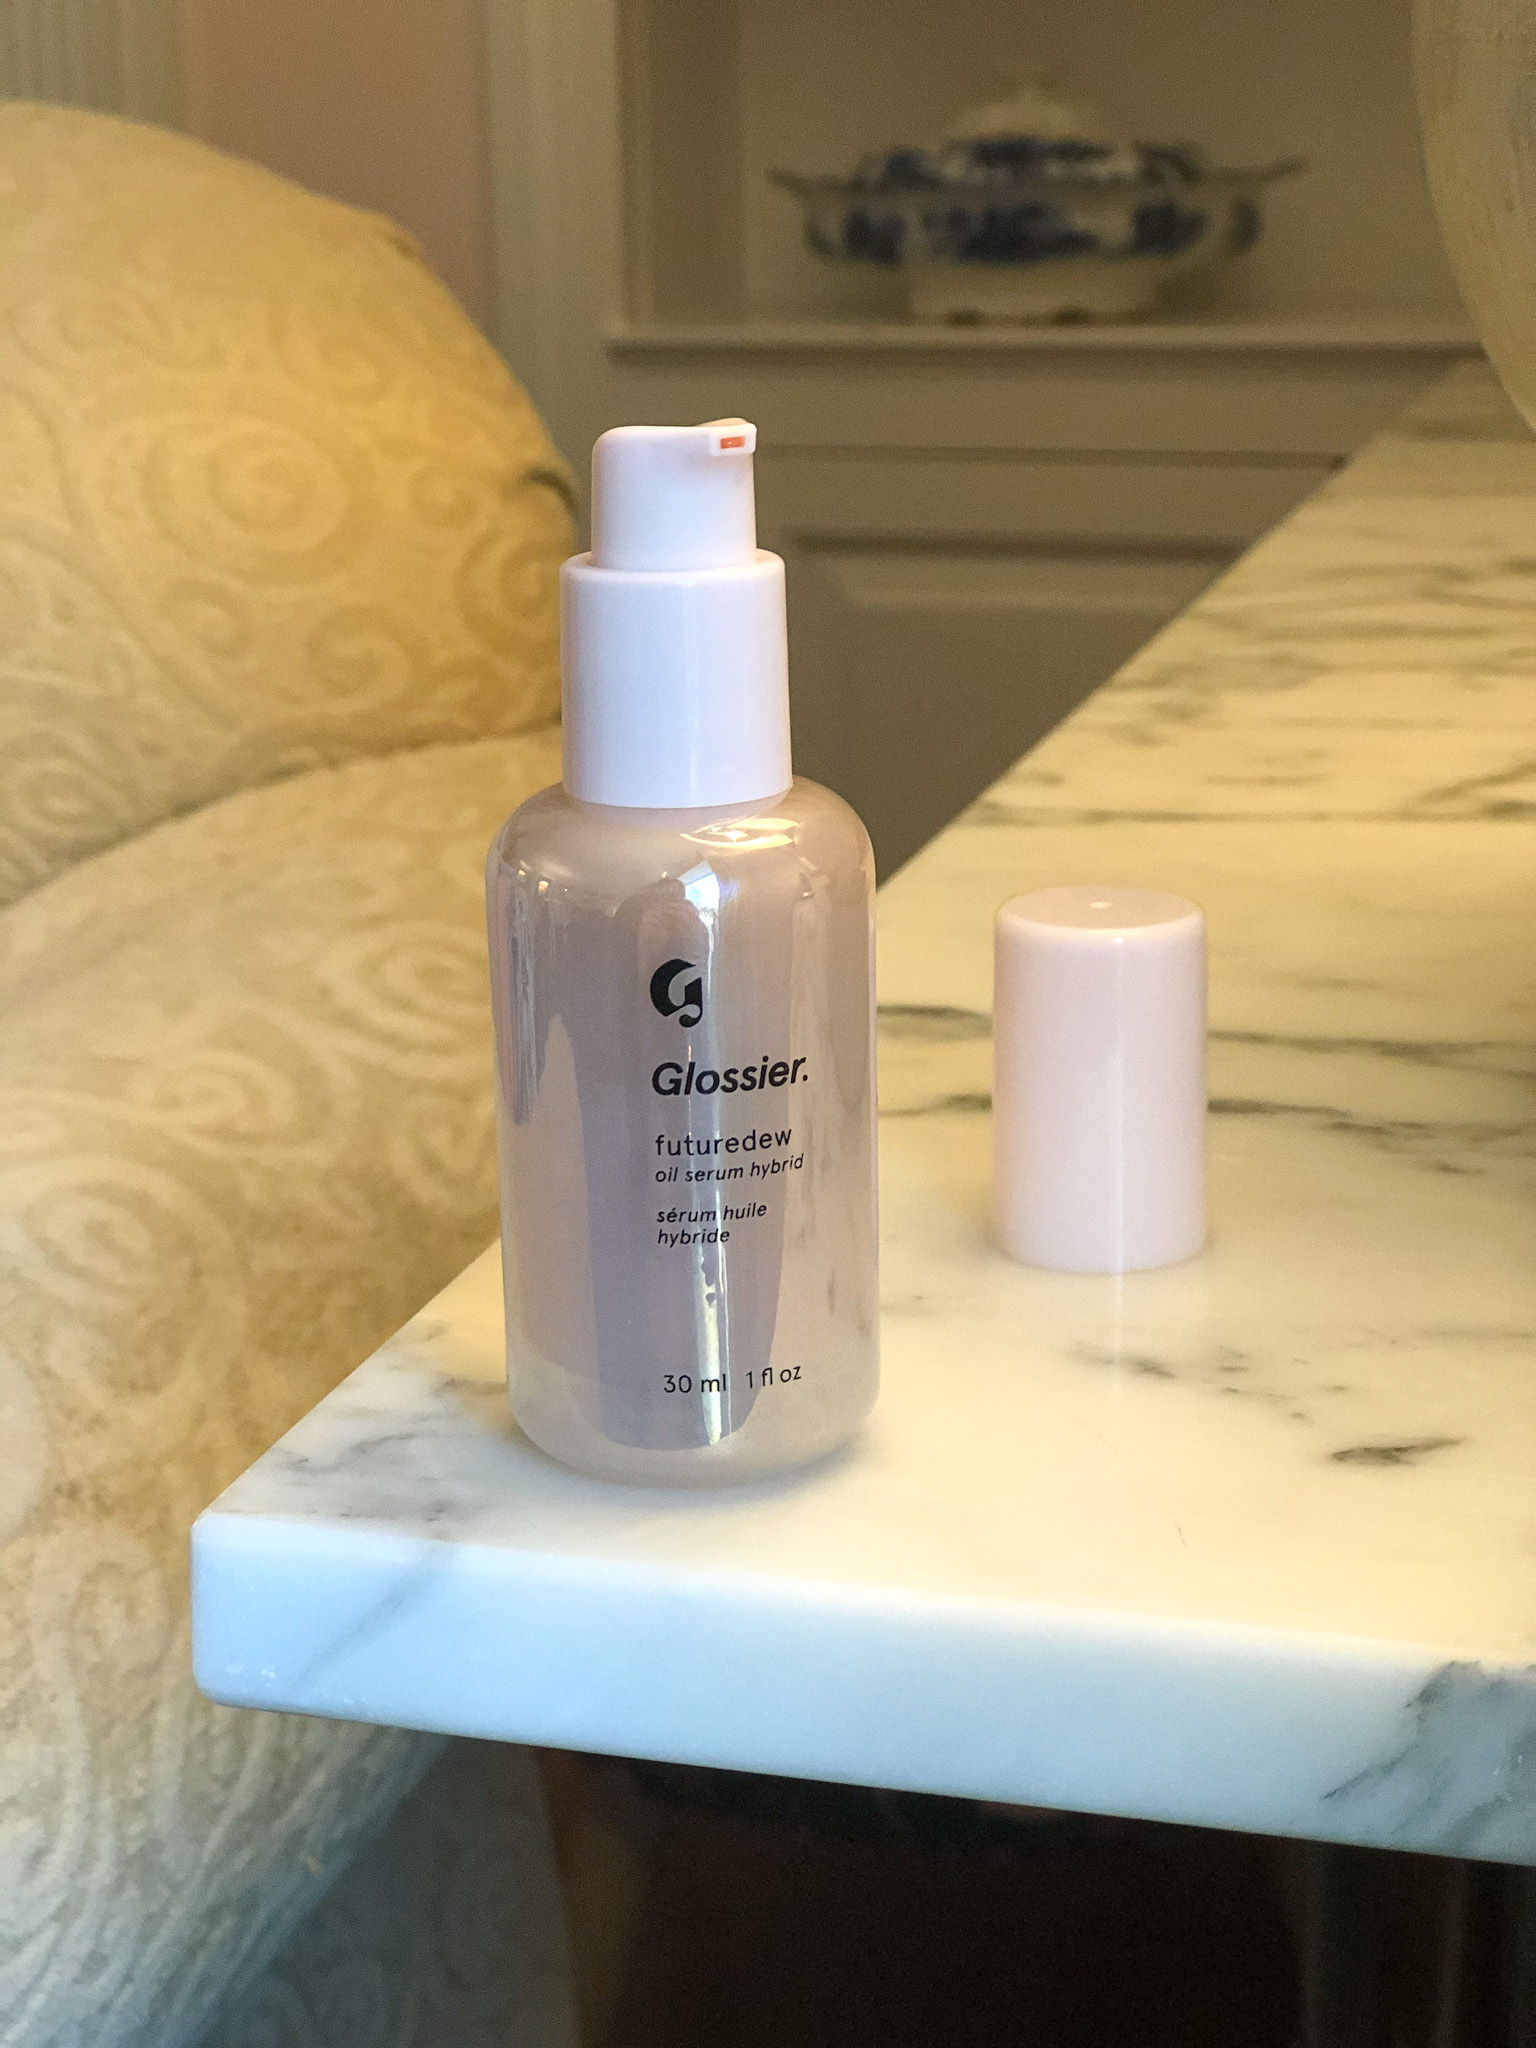 Glossier Futuredew, posed on a marble table